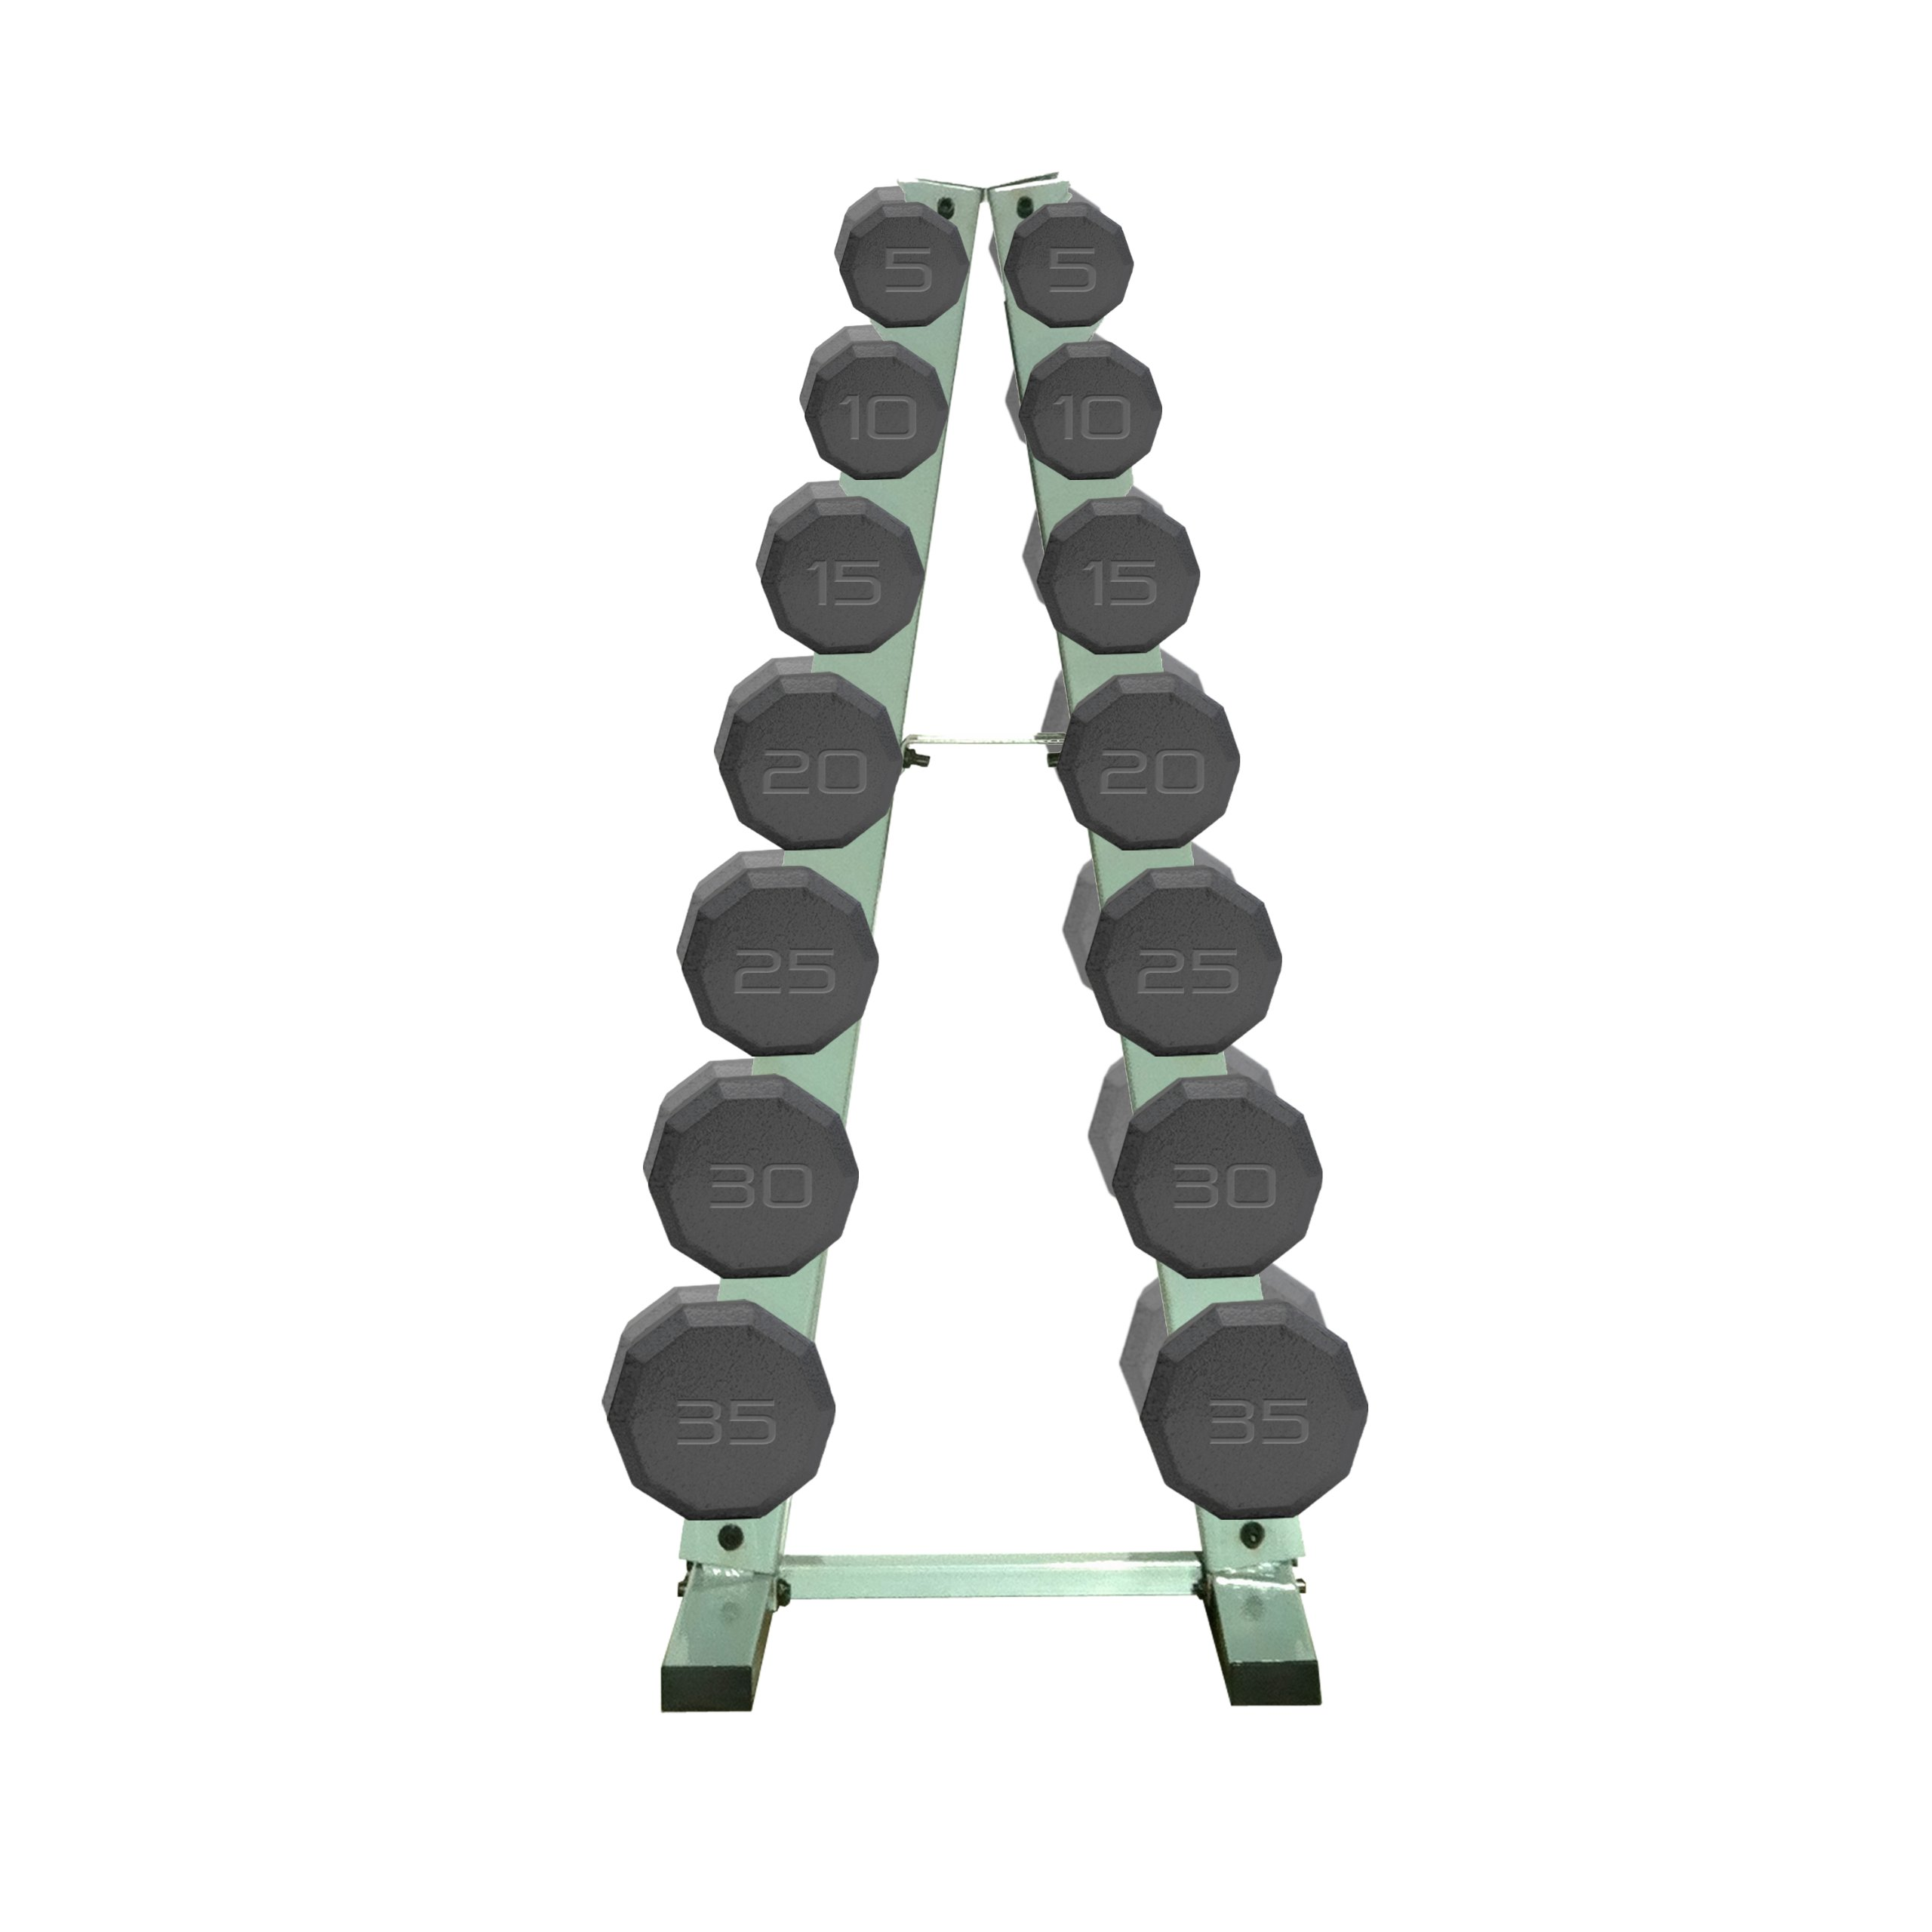 CAP Barbell Workout Dumbbell Weight Set with Frame Rack (Black, 280 Pounds) by CAP Barbell